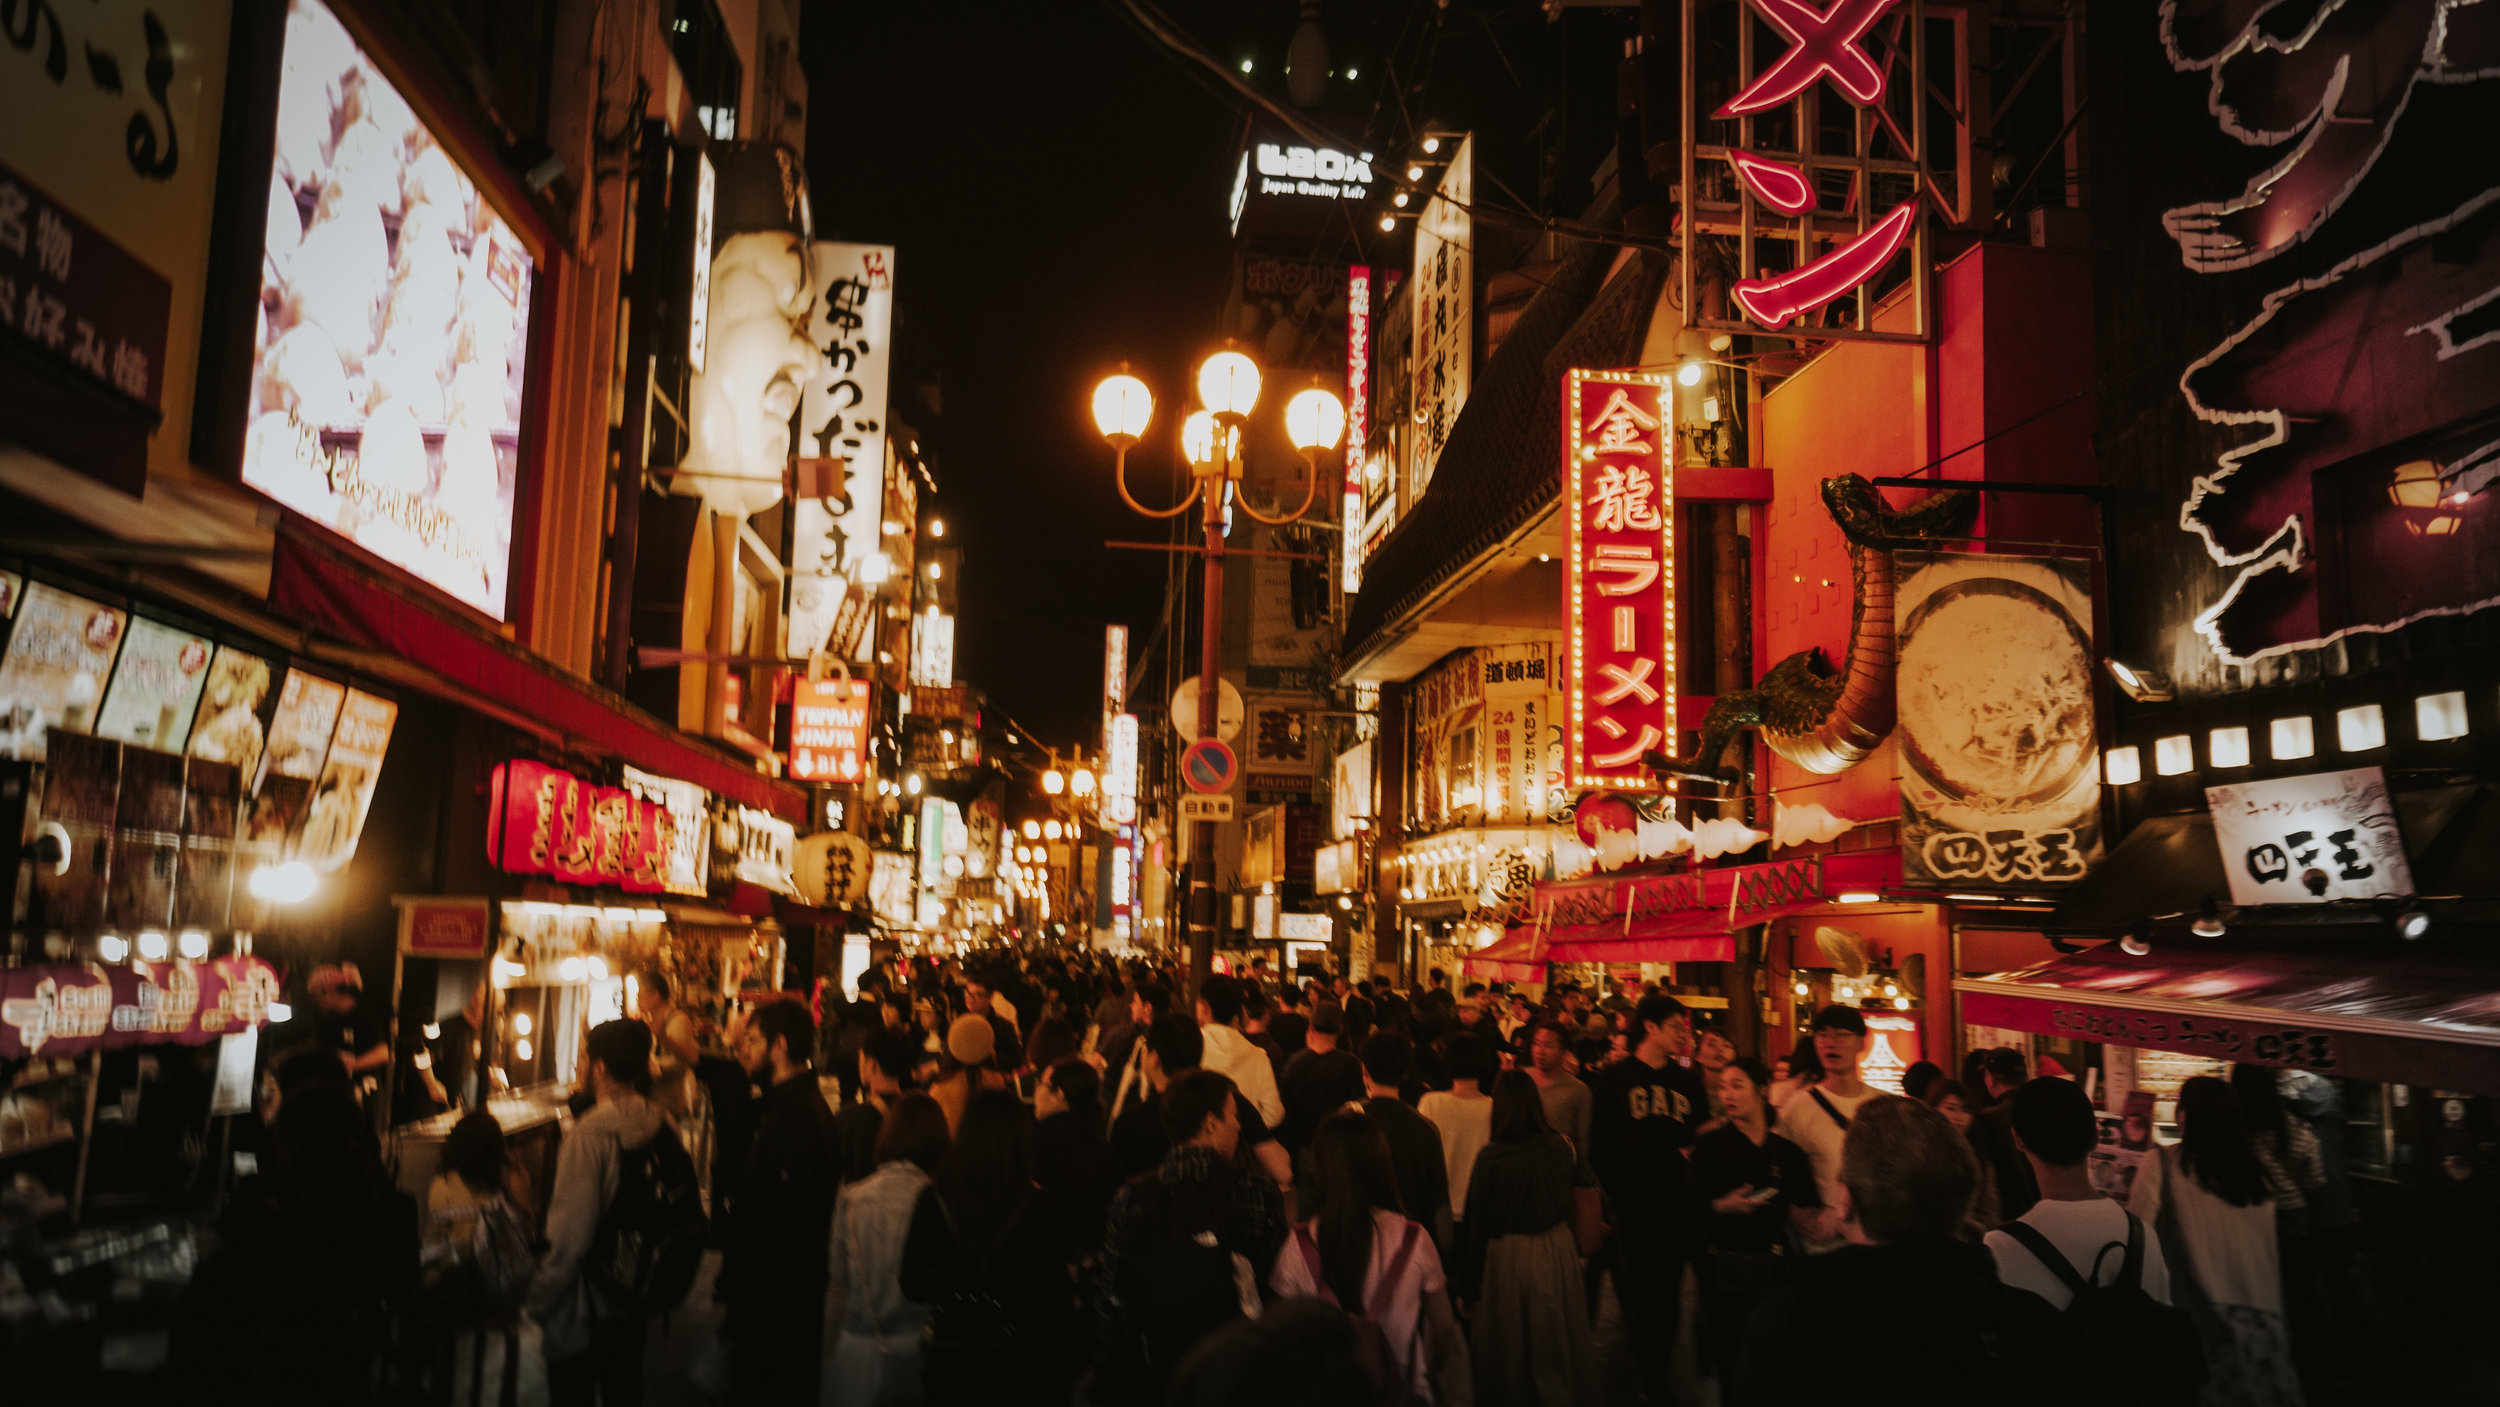 The lively crowds fill the streets of Dotonbori.